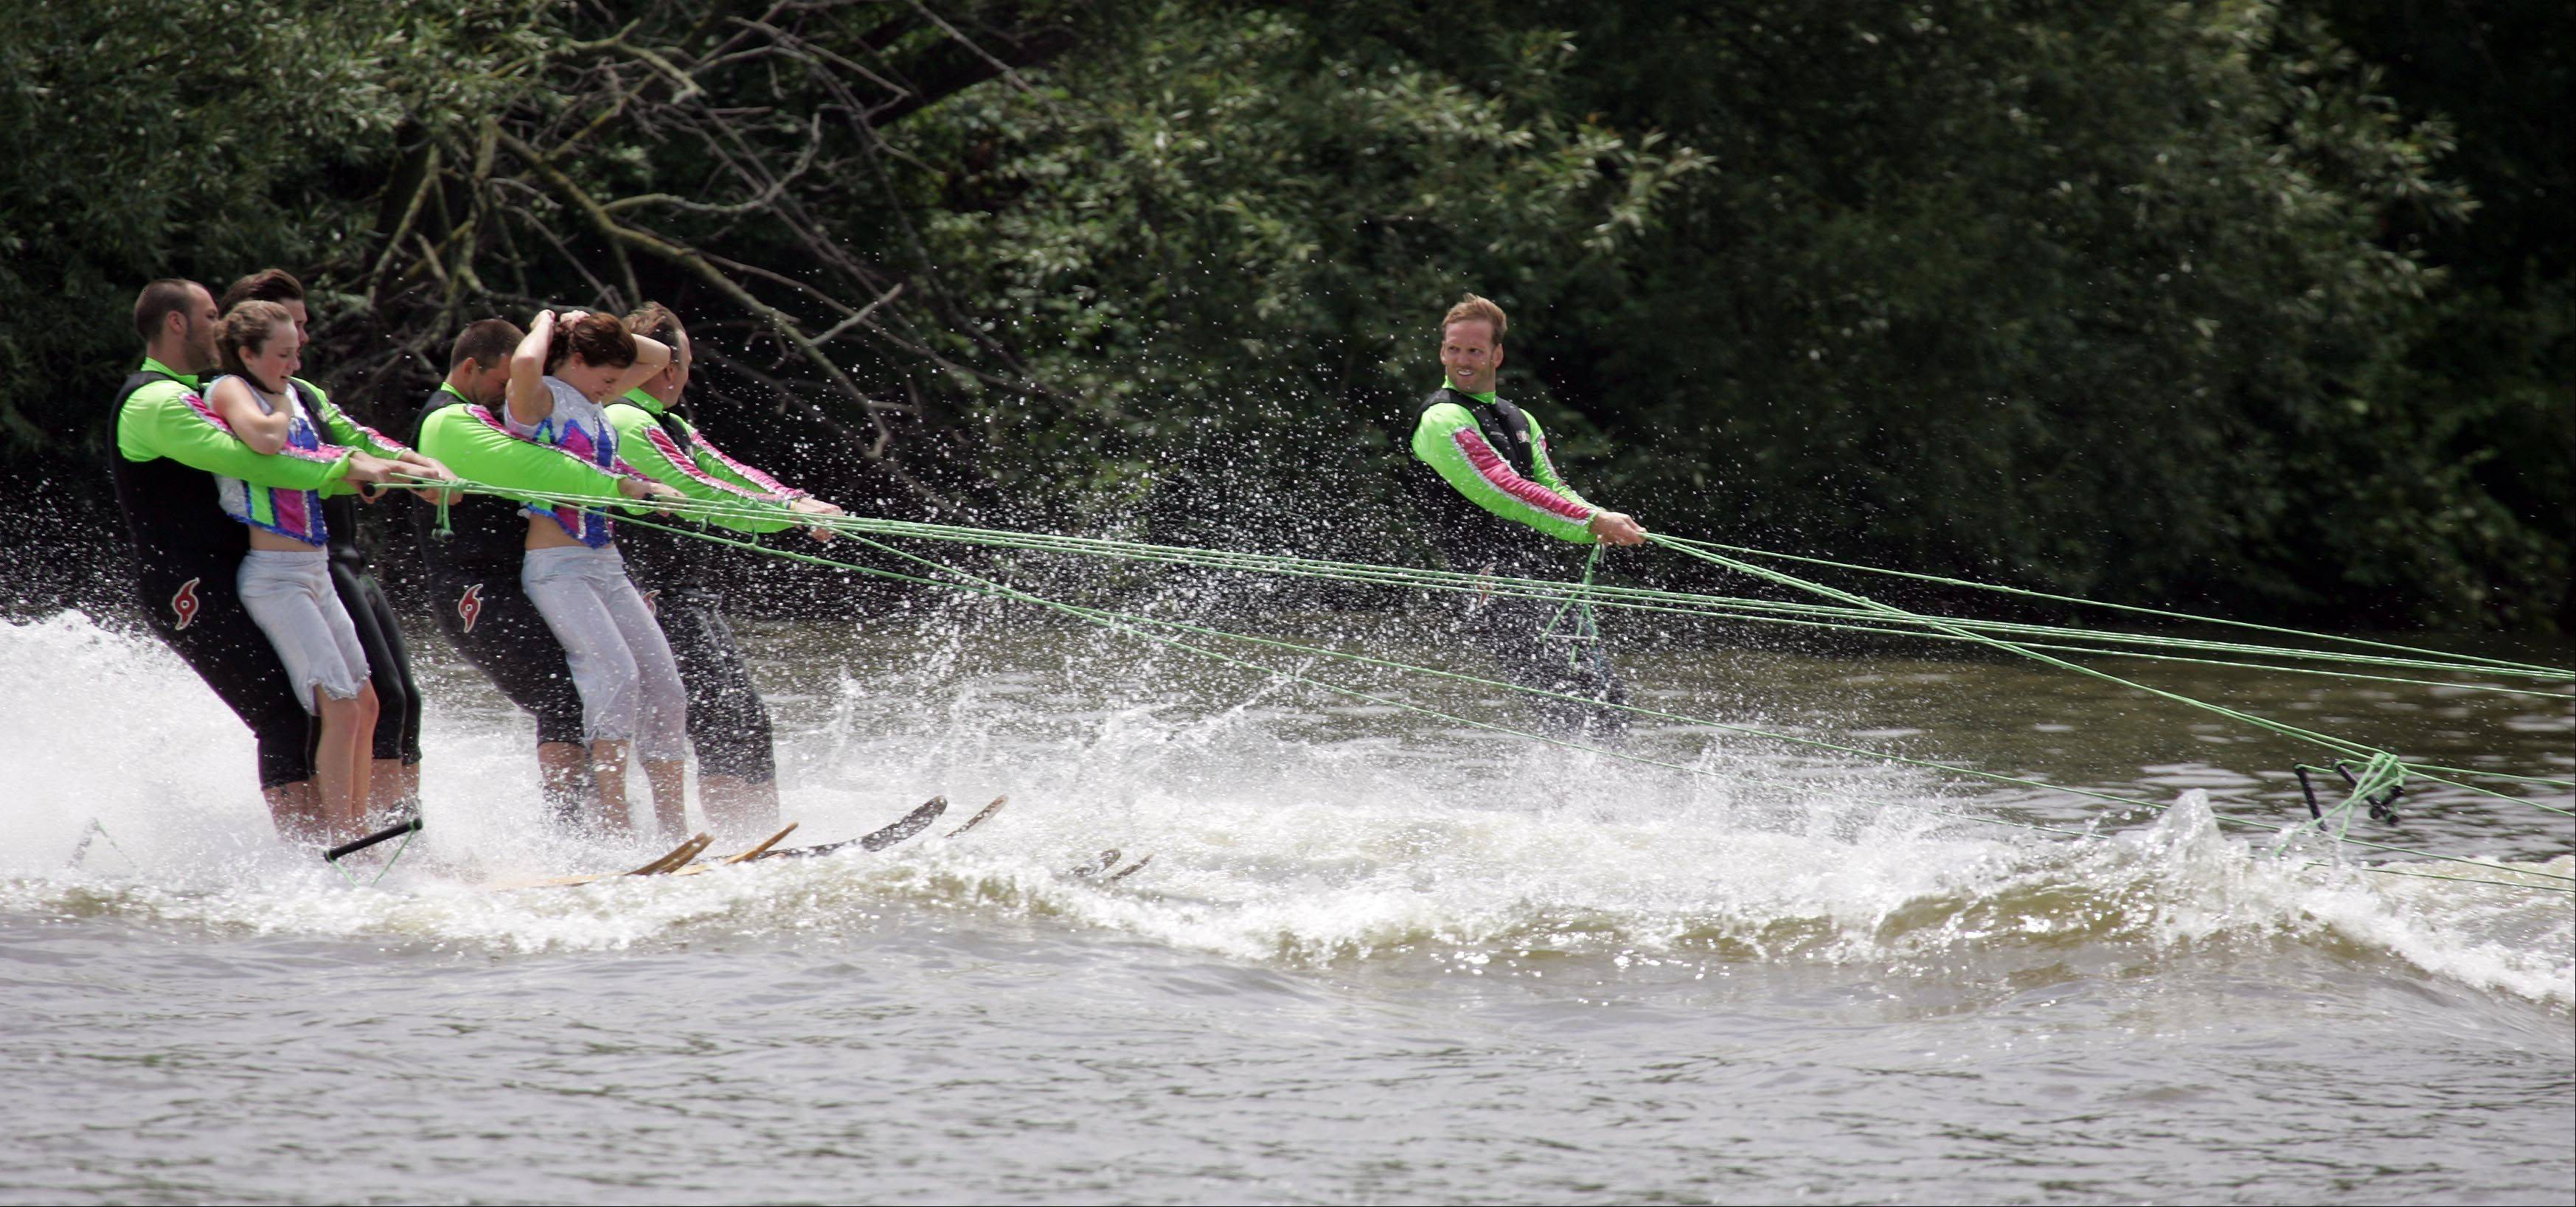 The Wonder Lake Water Ski Show Team performs during the Pride of the Fox RiverFest in St. Charles.